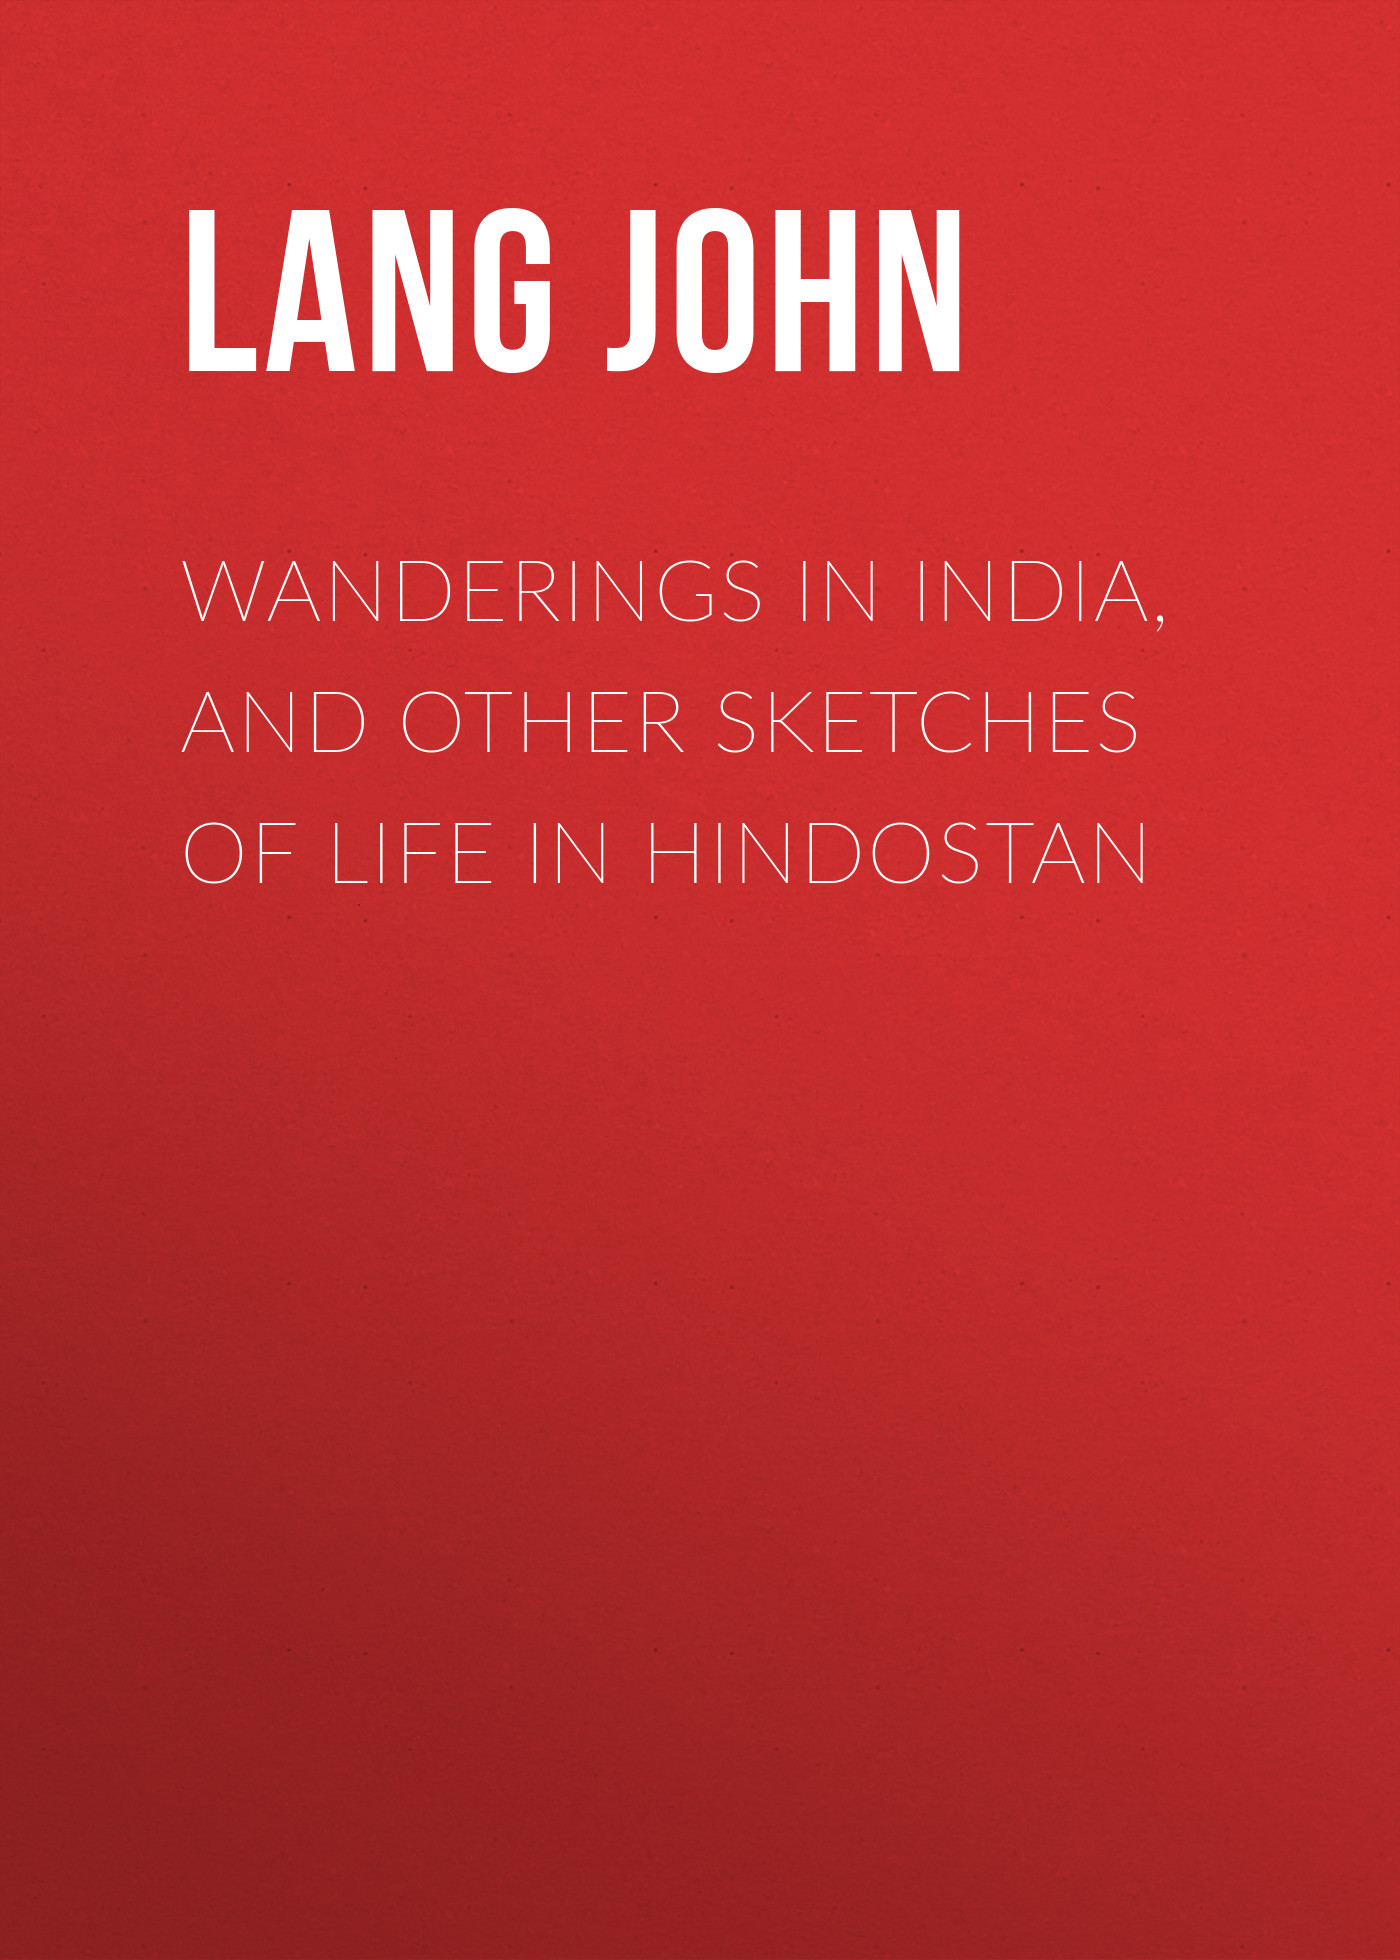 Lang John Wanderings in India, and Other Sketches of Life in Hindostan топ бра для девочки infinity kids lori цвет белый 32204220001 200 размер 110 116